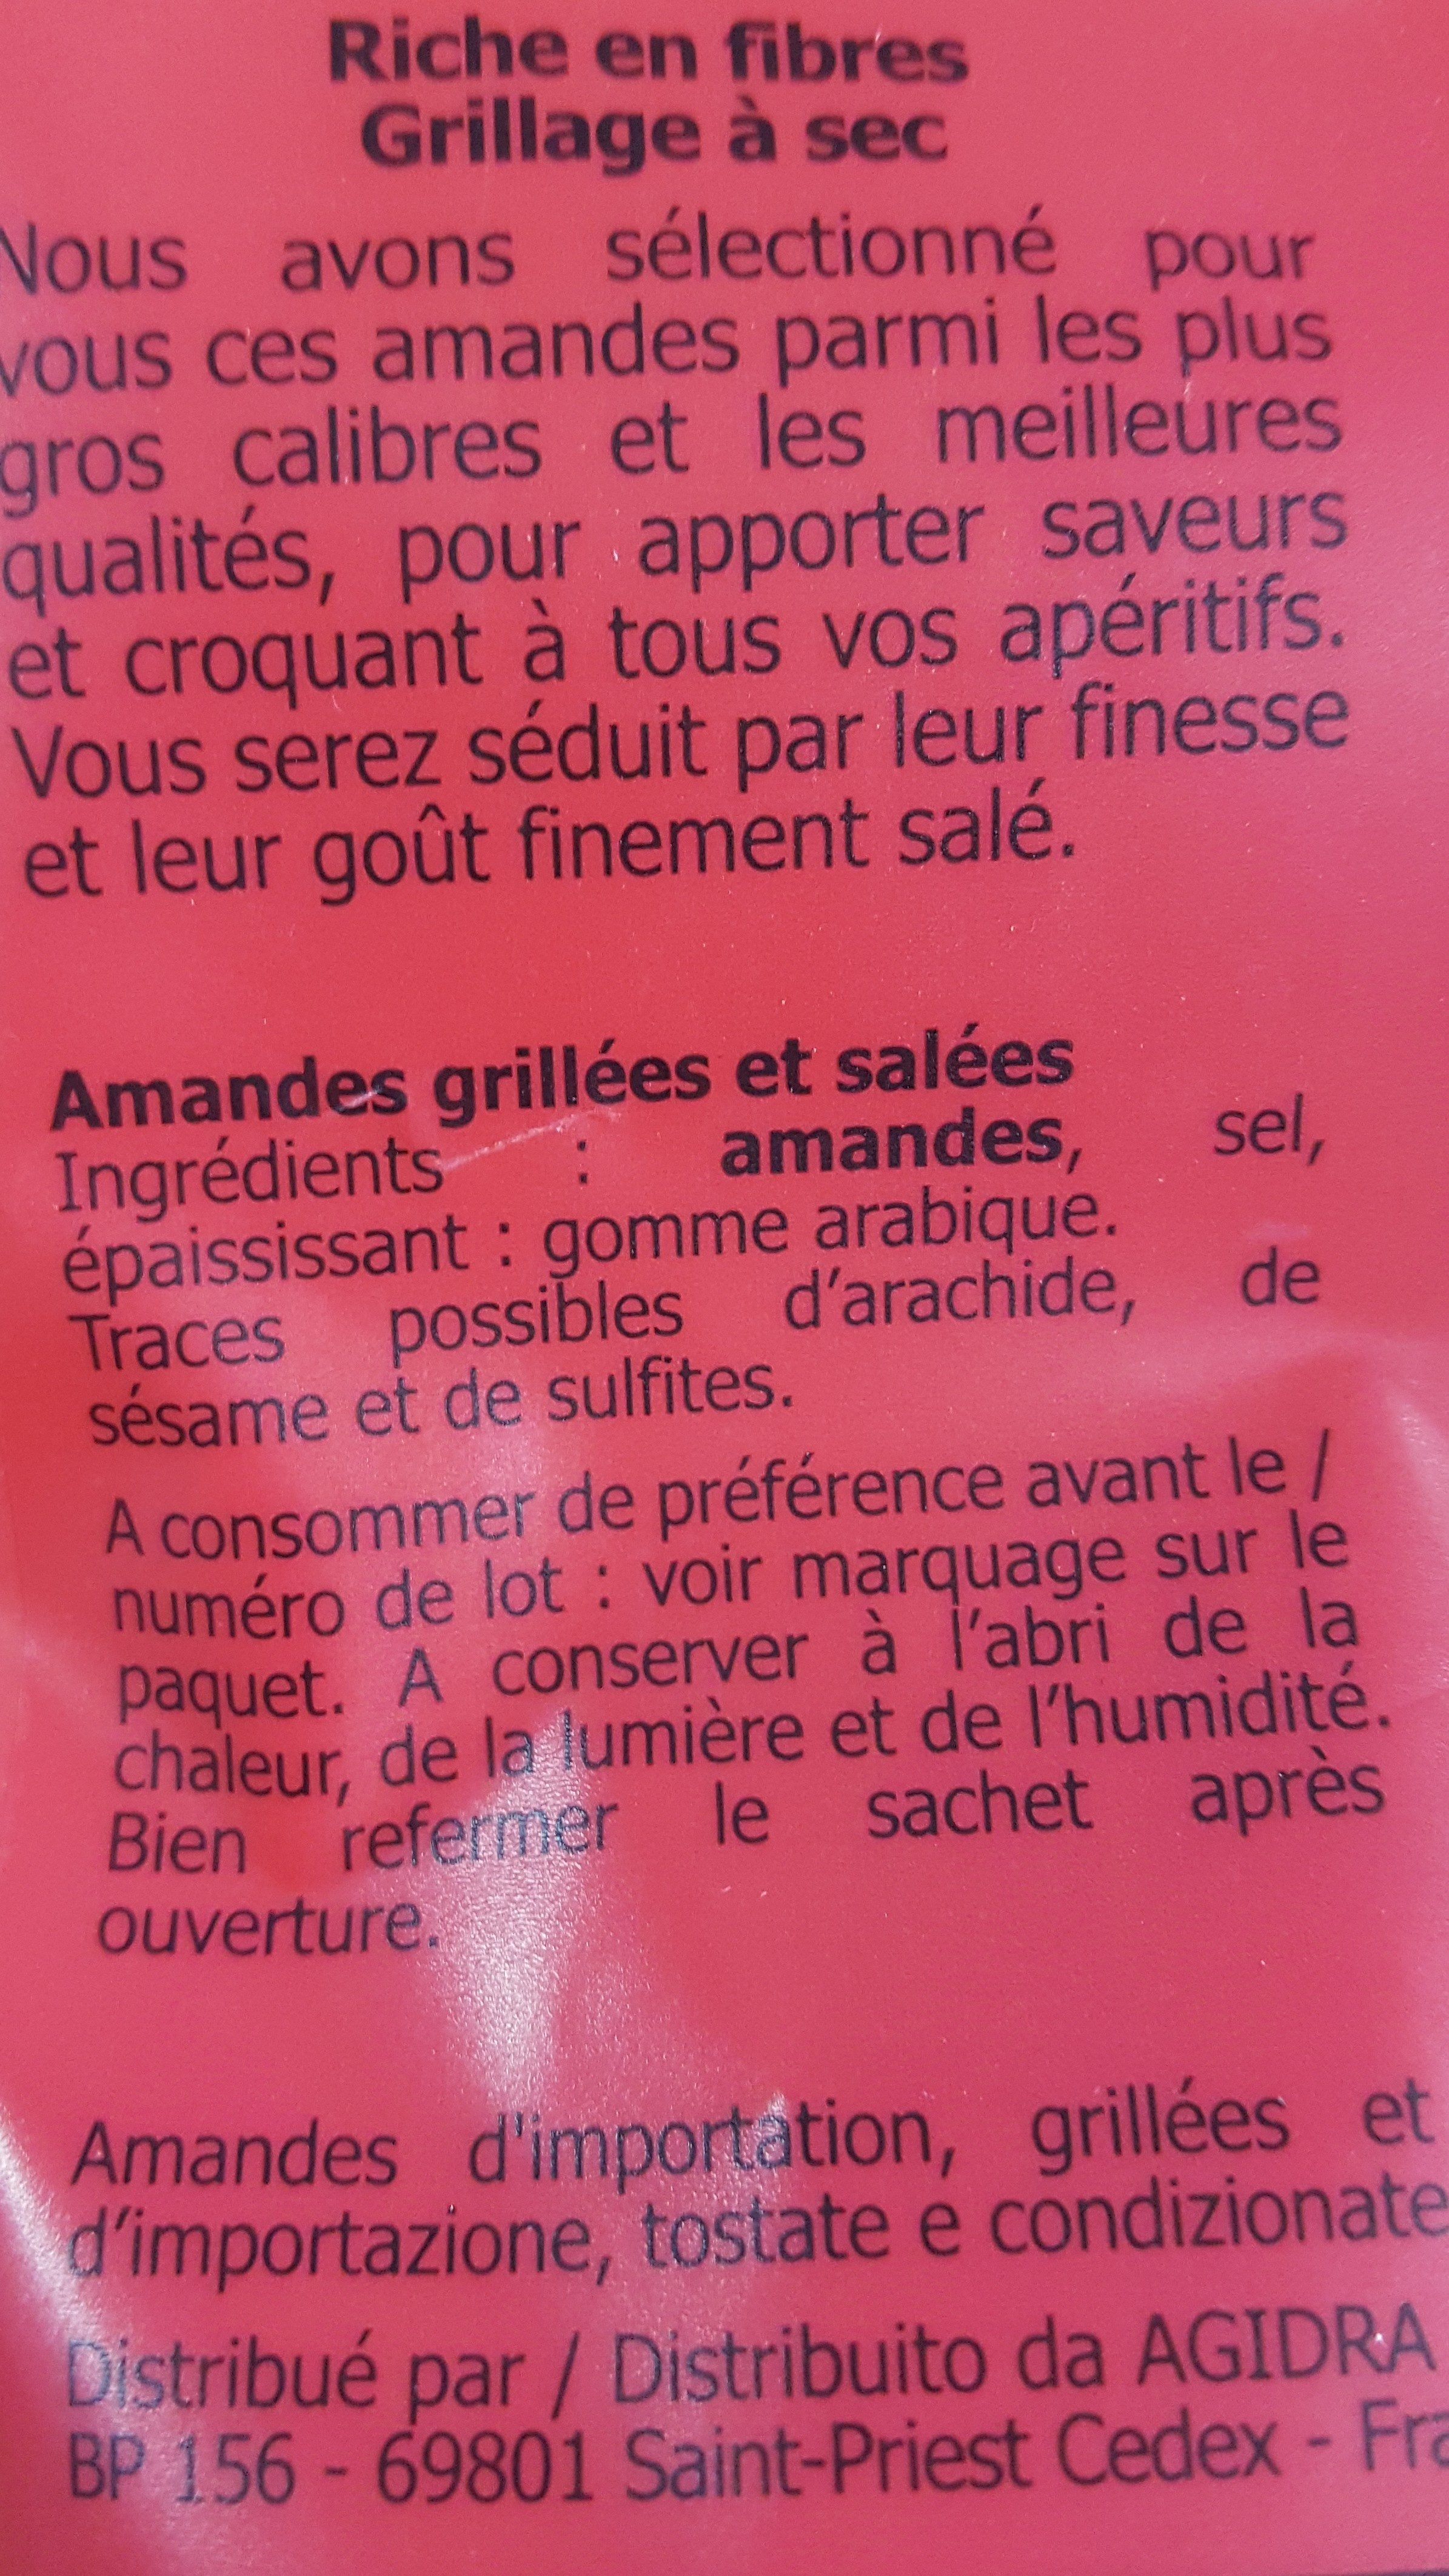 Amandes grillees salees - Ingrédients - fr